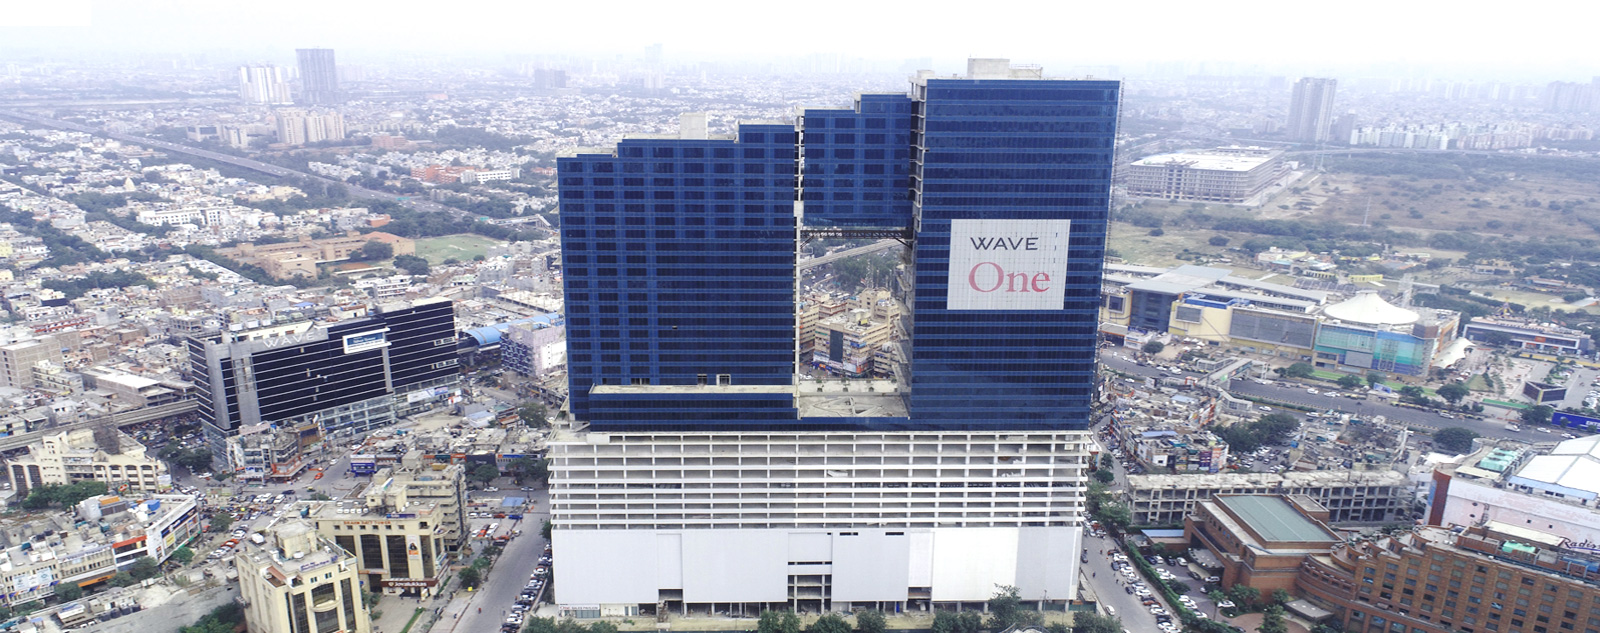 Wave One - A 41 - Storey Iconic Structure